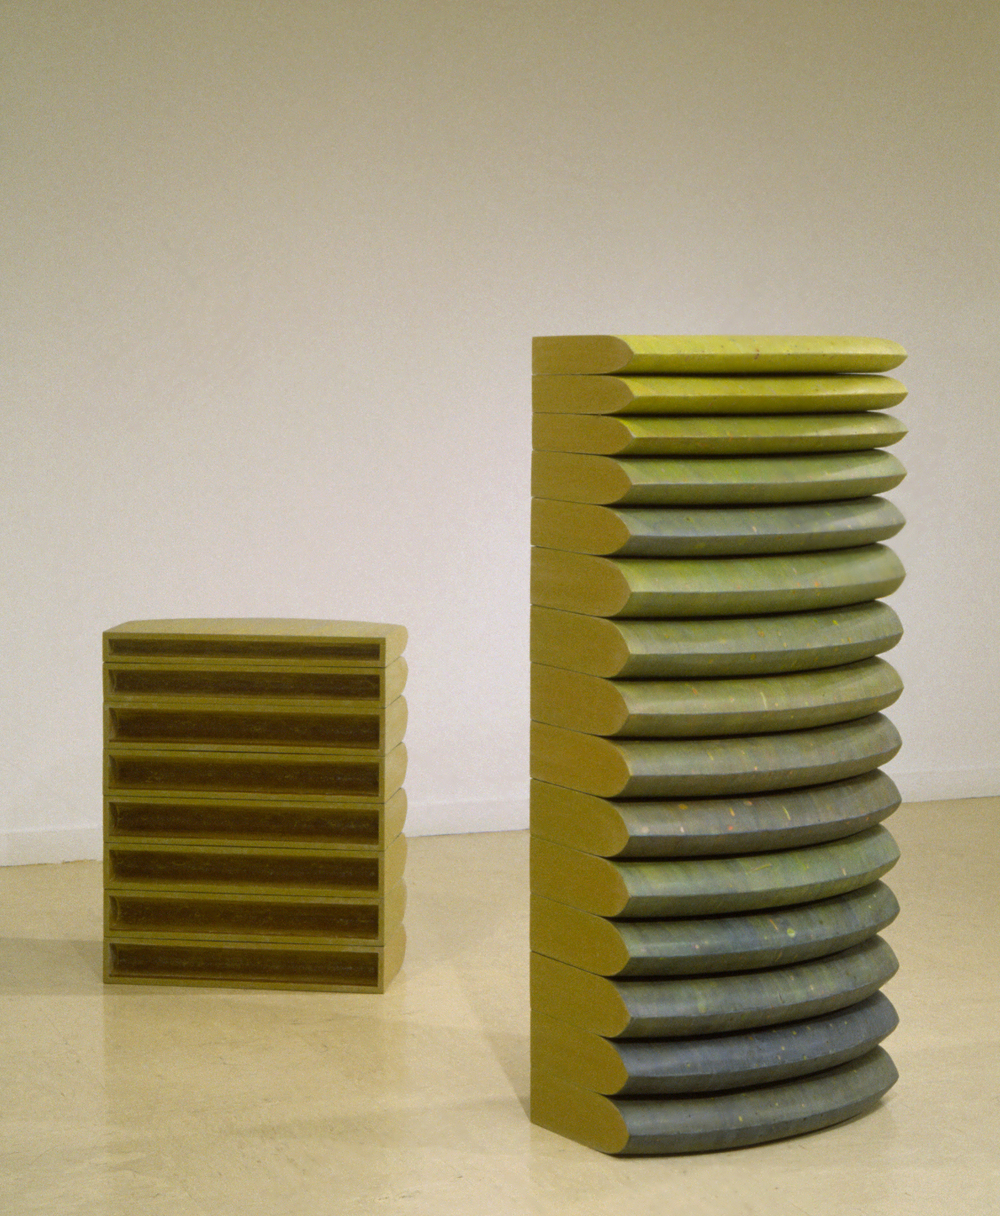 hive, acrylic paint on cork, polyurethane, shaped MDF, 33 x 25 x 12; 58 x 25 x 12,  Cranbrook Art Museum, 1999